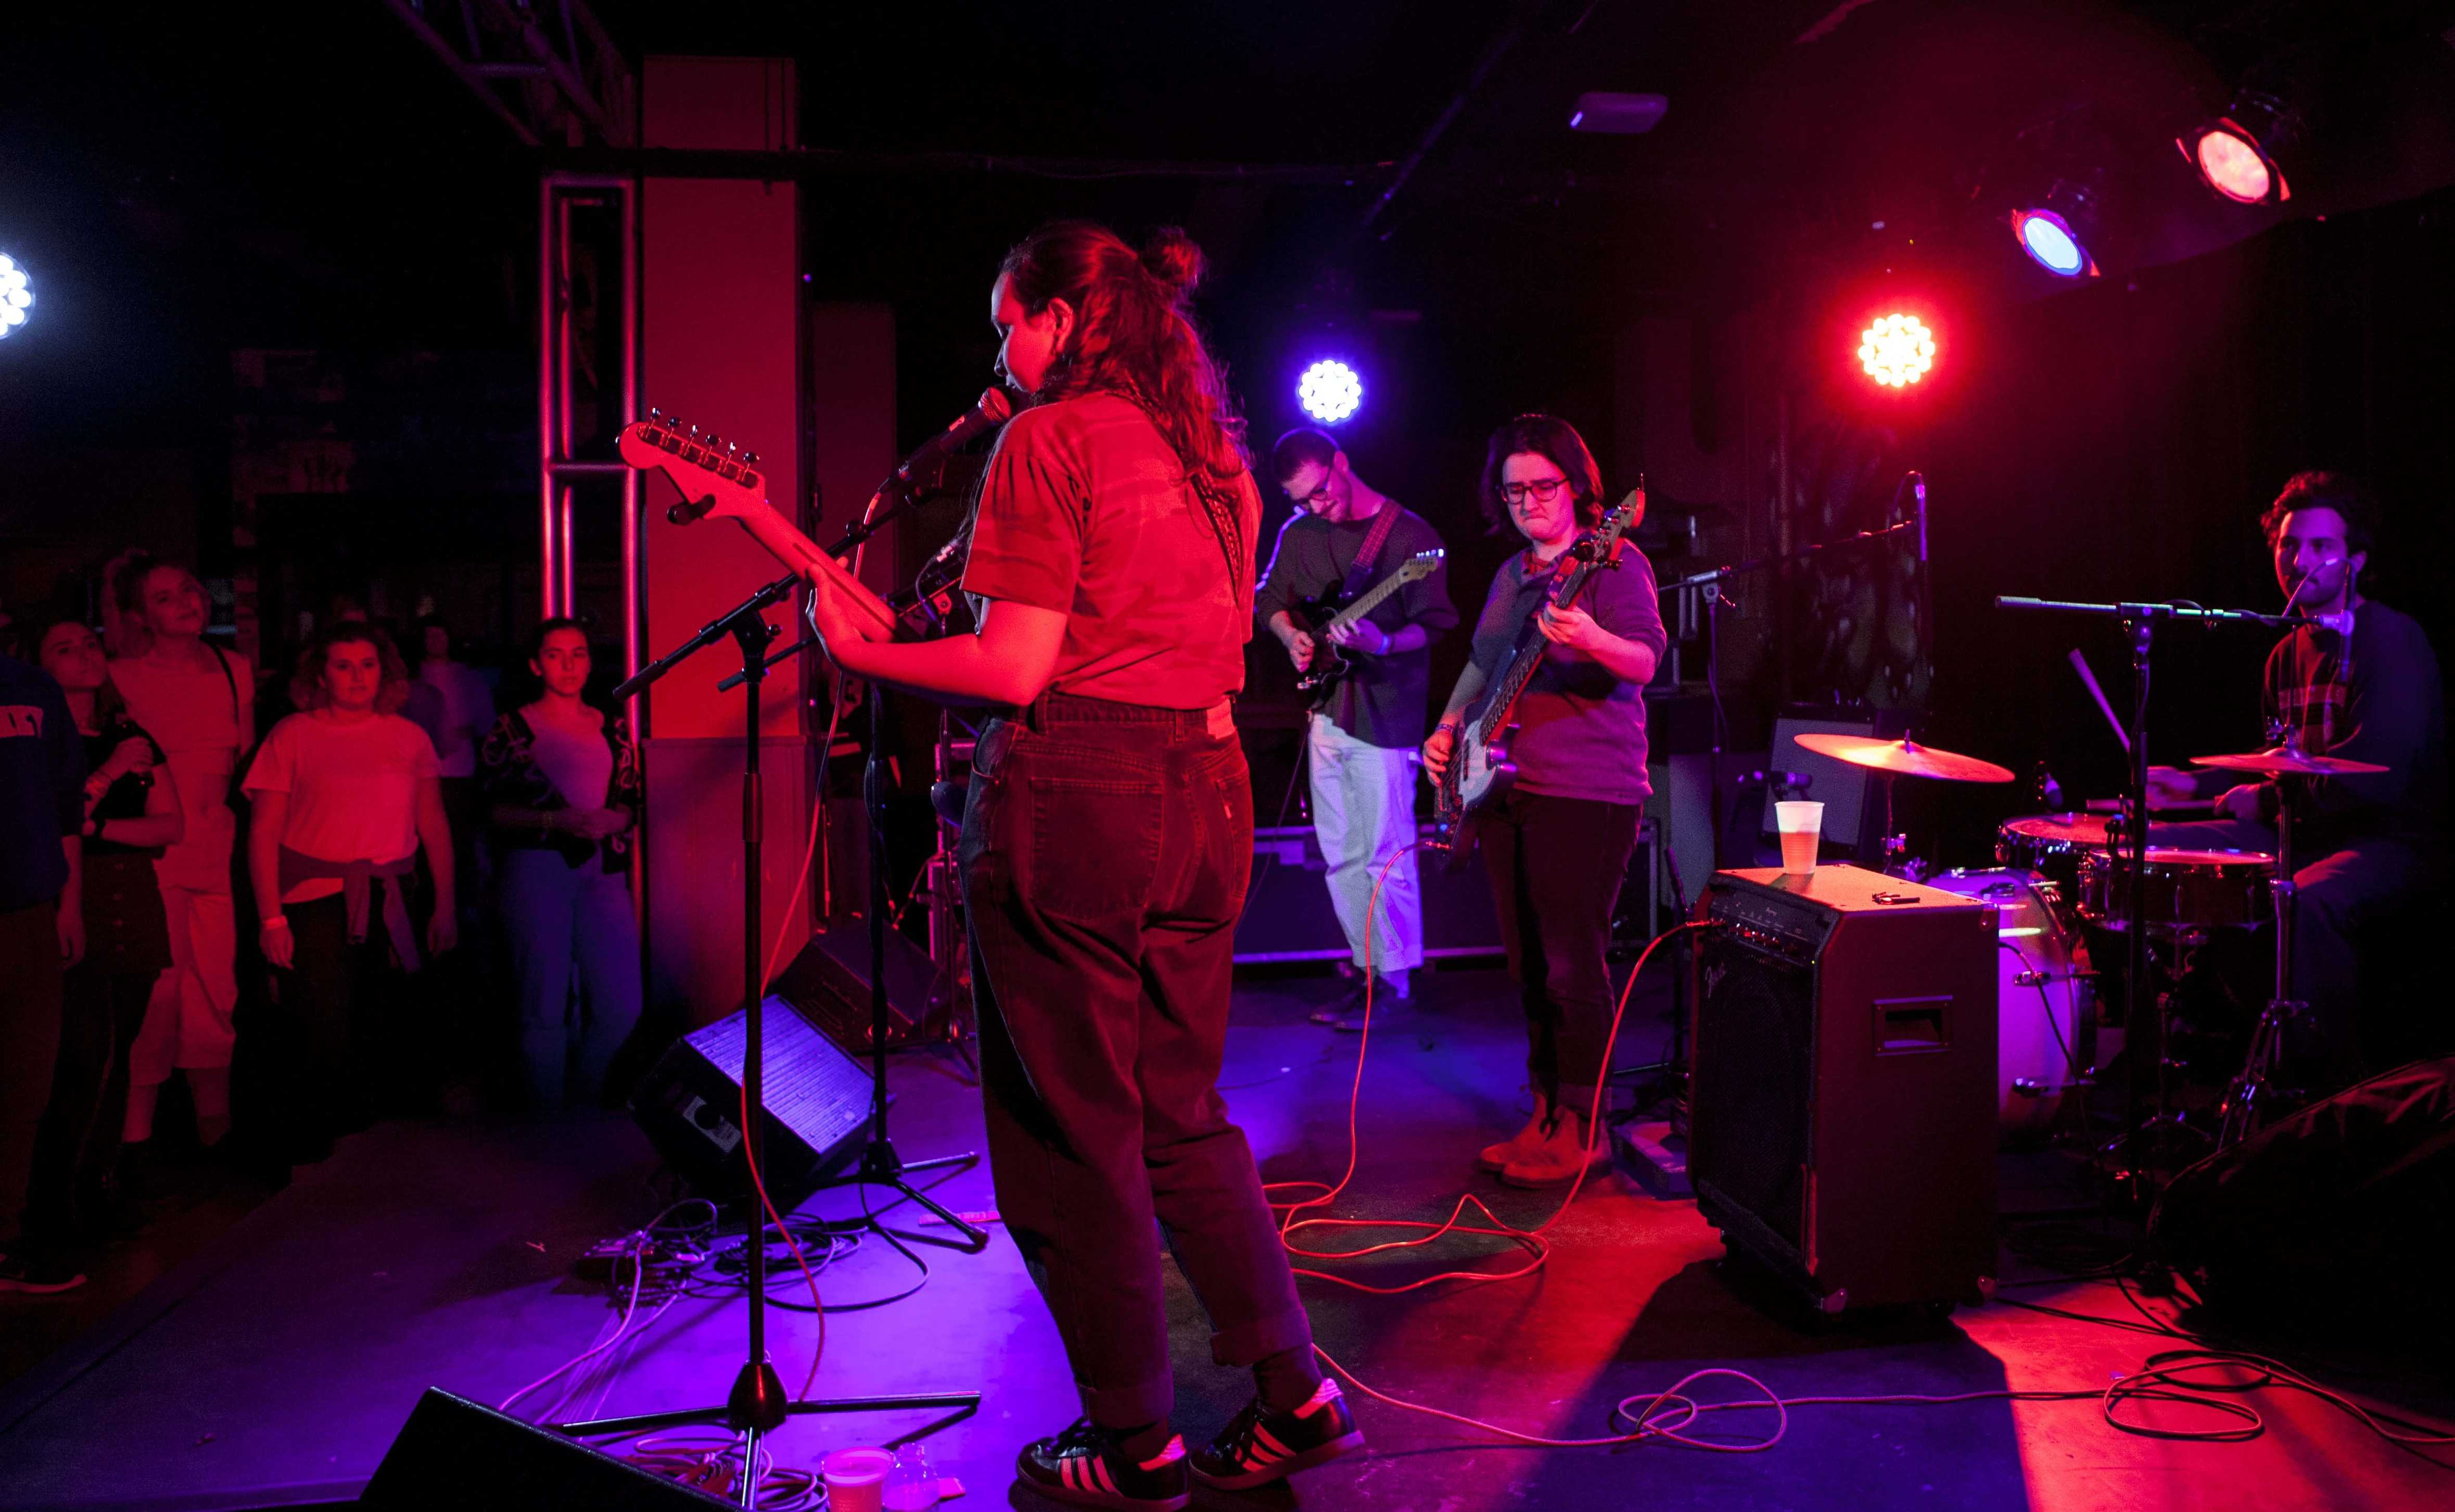 Kenyon alumni perform together as the basement rock band SPORTS. The group concluded its tour at the 'Sco Monday night with songs from its sophomore record All of Something.